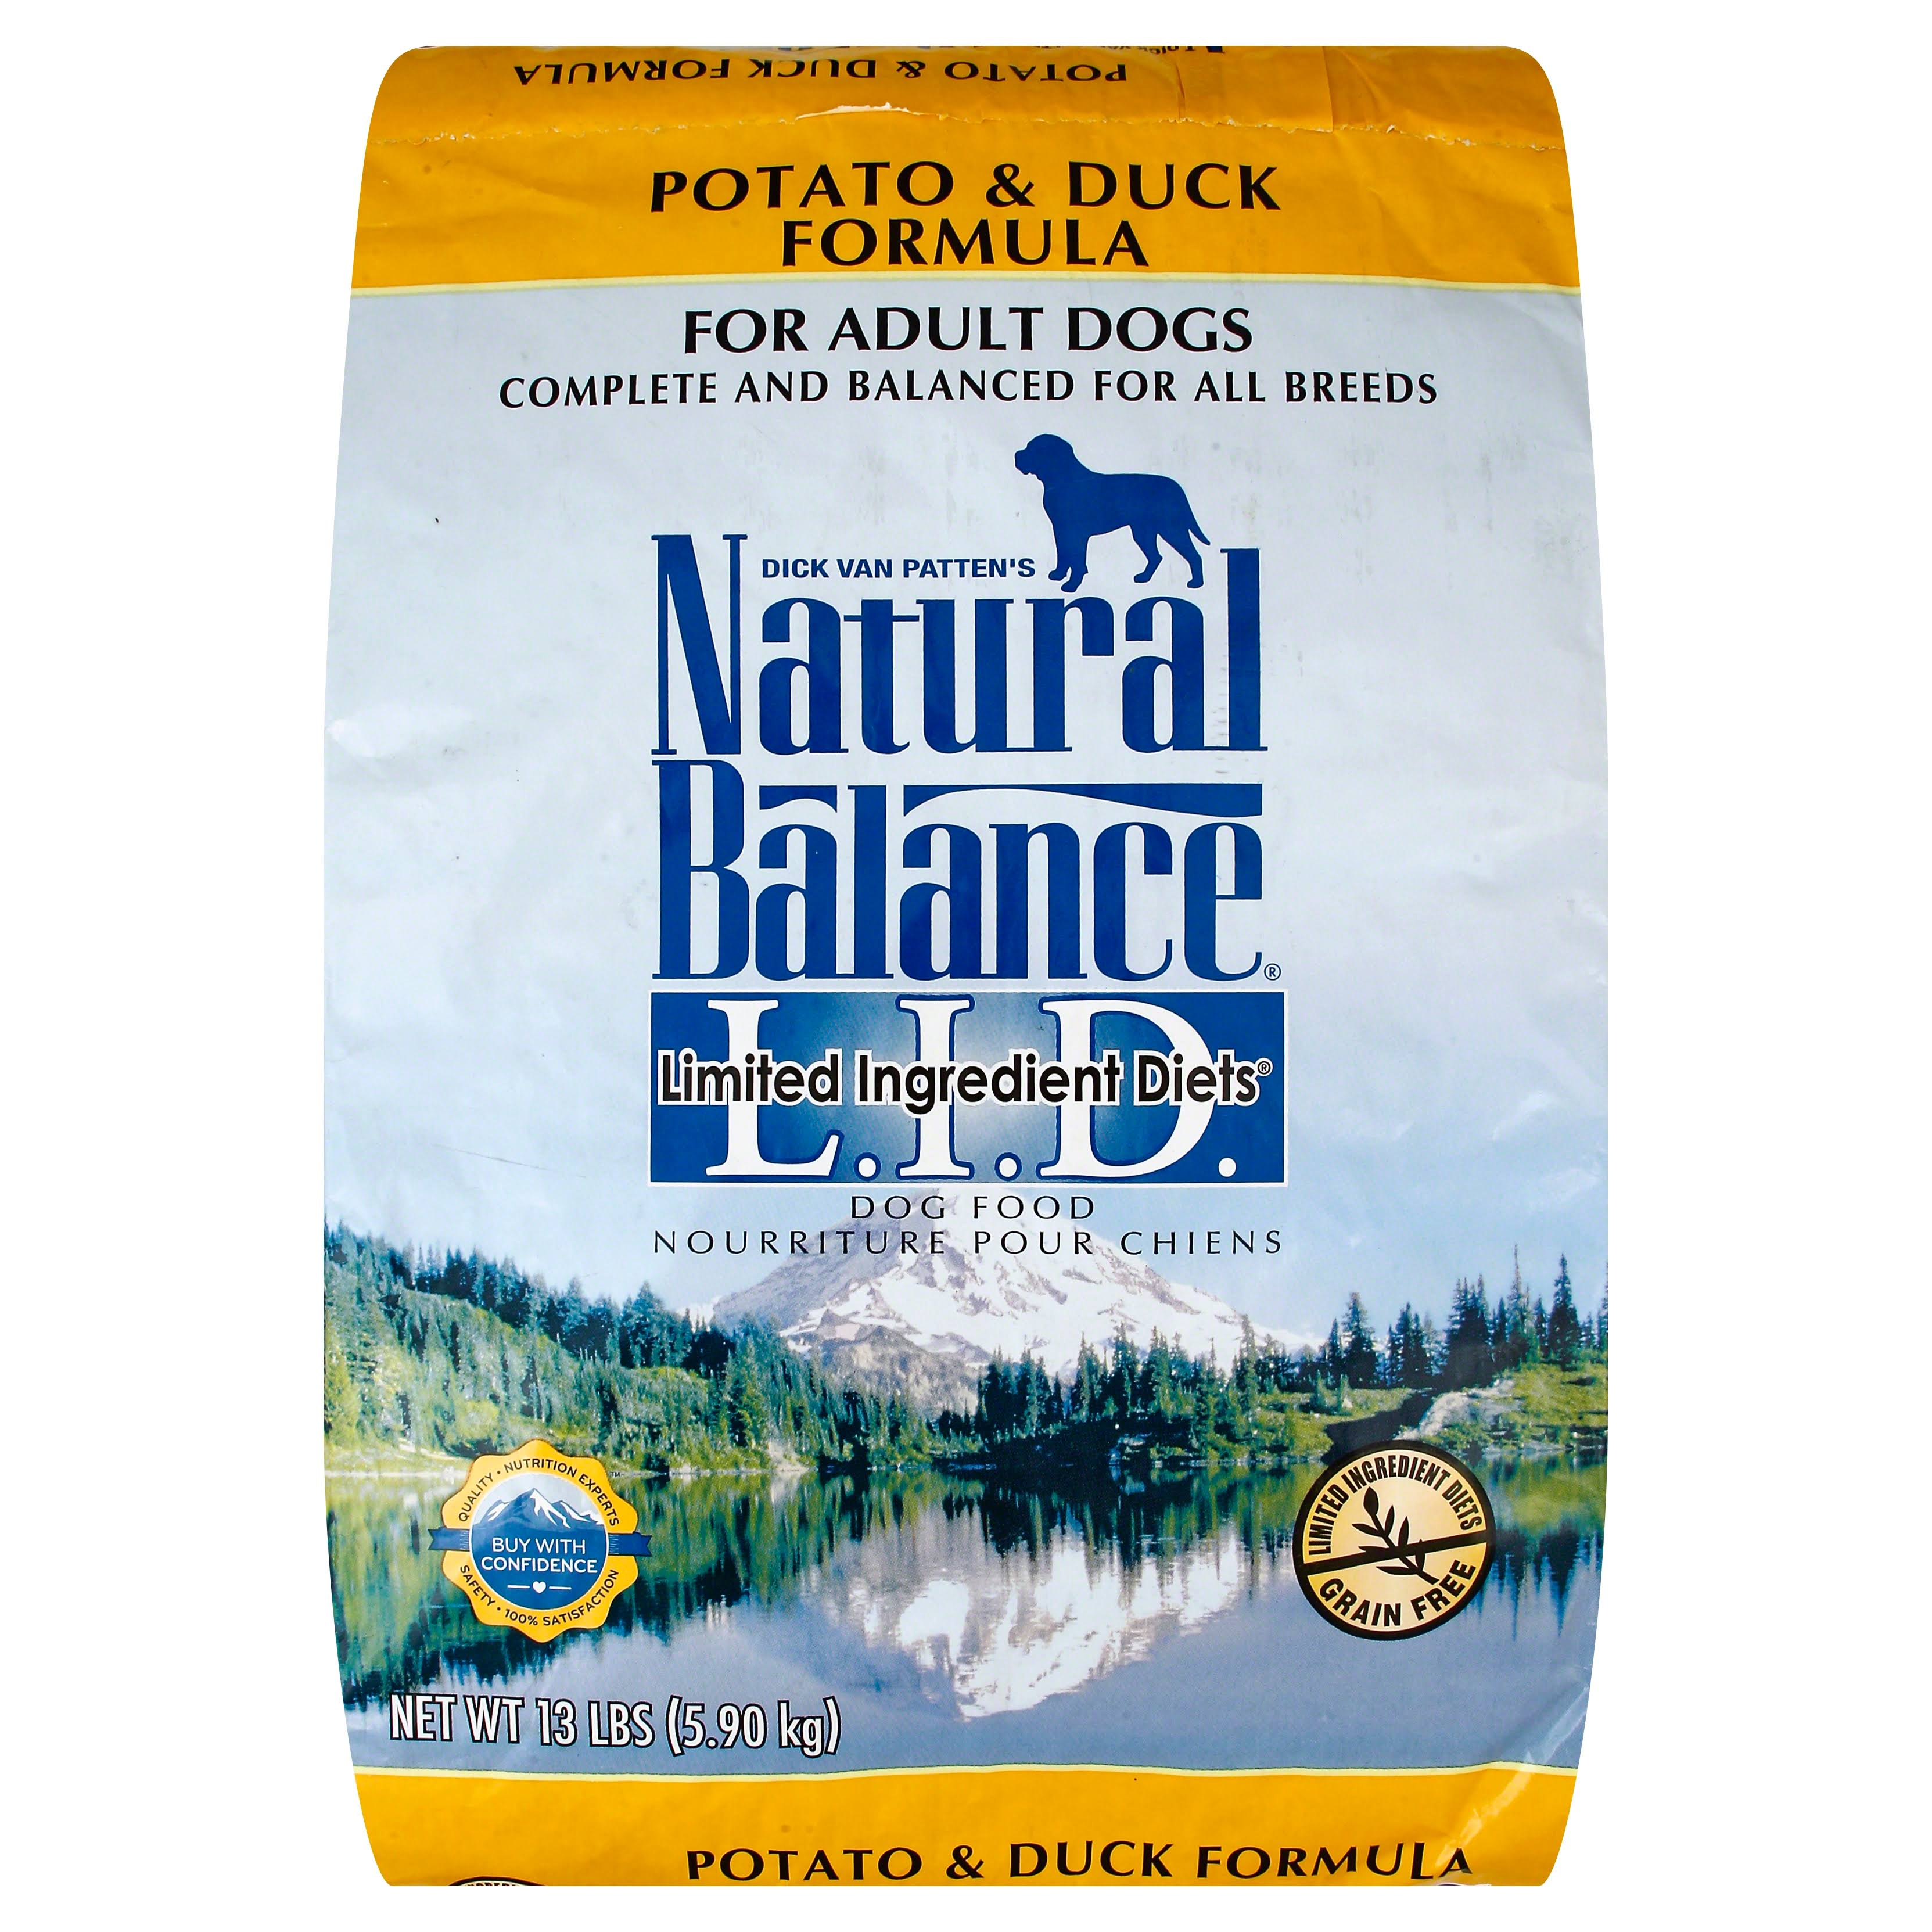 Natural Balance Dog Food - Potato and Duck